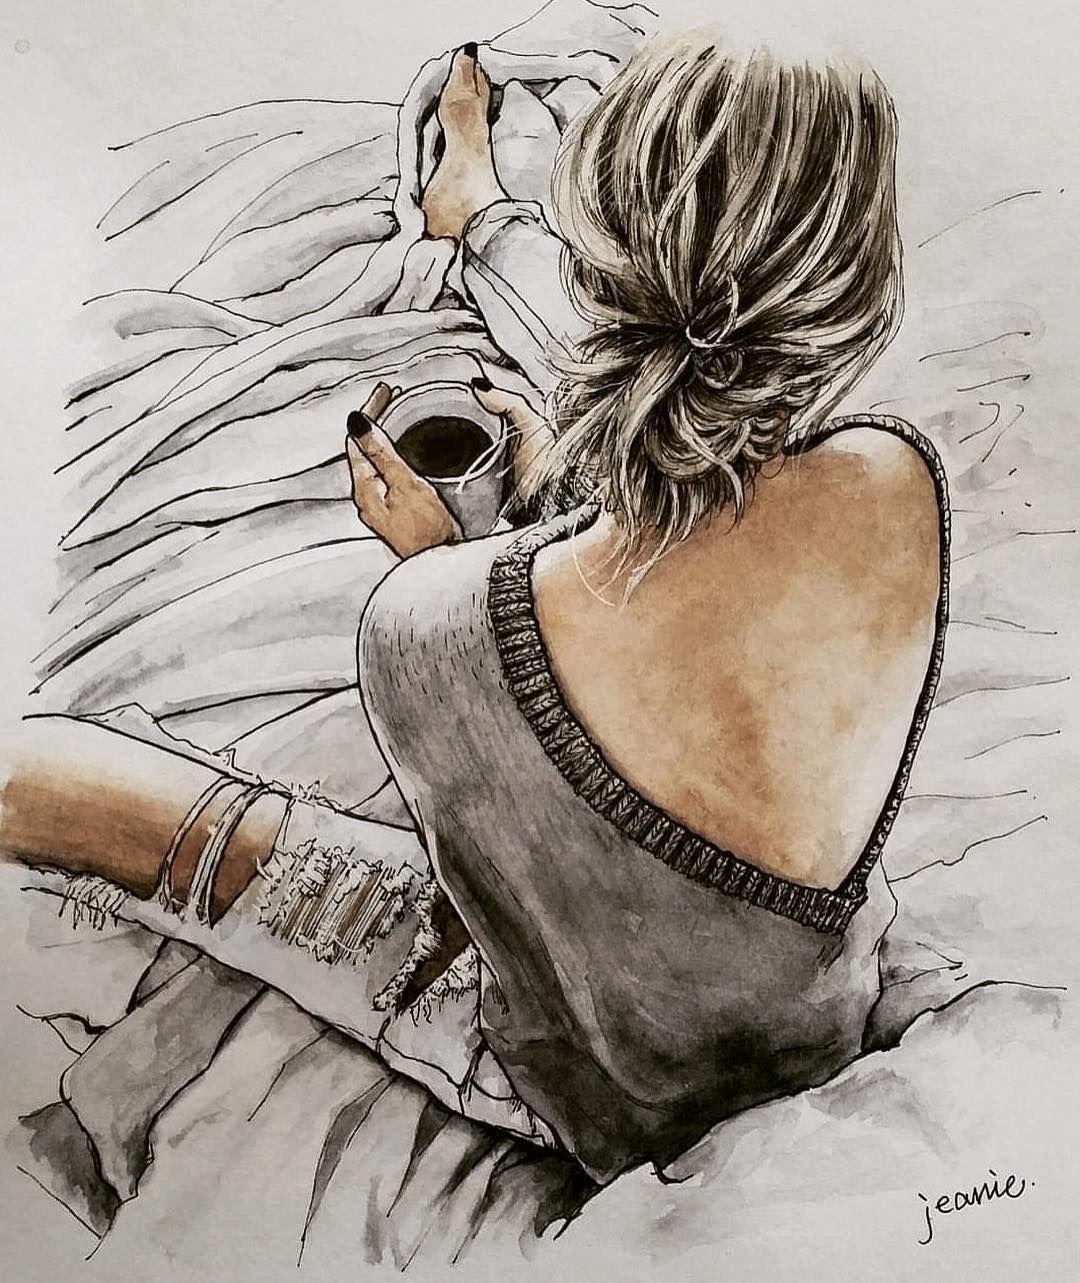 """Photo of Jeanie on Instagram: """". Back . . . . . . . . #drawing #painting #watercolor #pendrawing #art #artwork #illustration #sketch #back #knit #coffee #fashion #style…"""""""